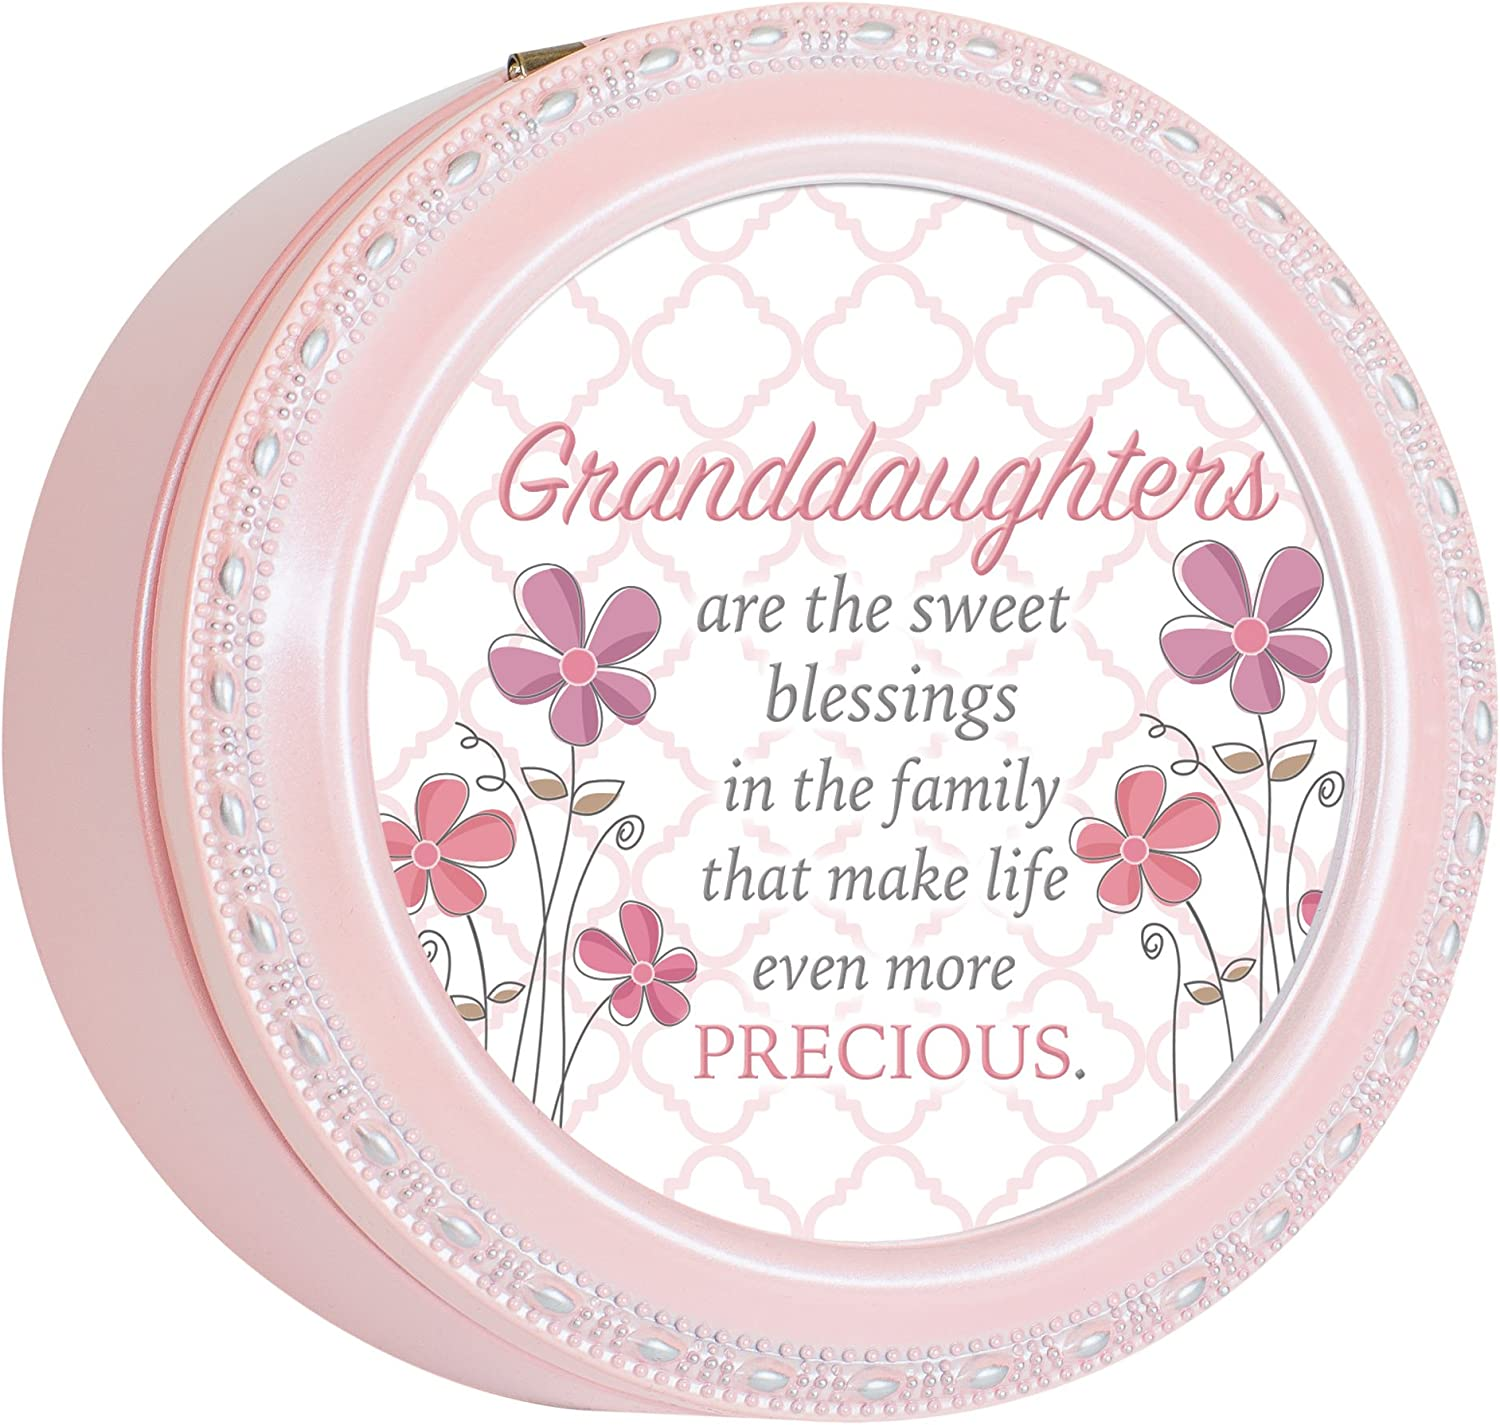 Cottage Garden Granddaughters Sweet Blessings Black Rope Trim Jewelry Music Box Plays You are My Sunshine